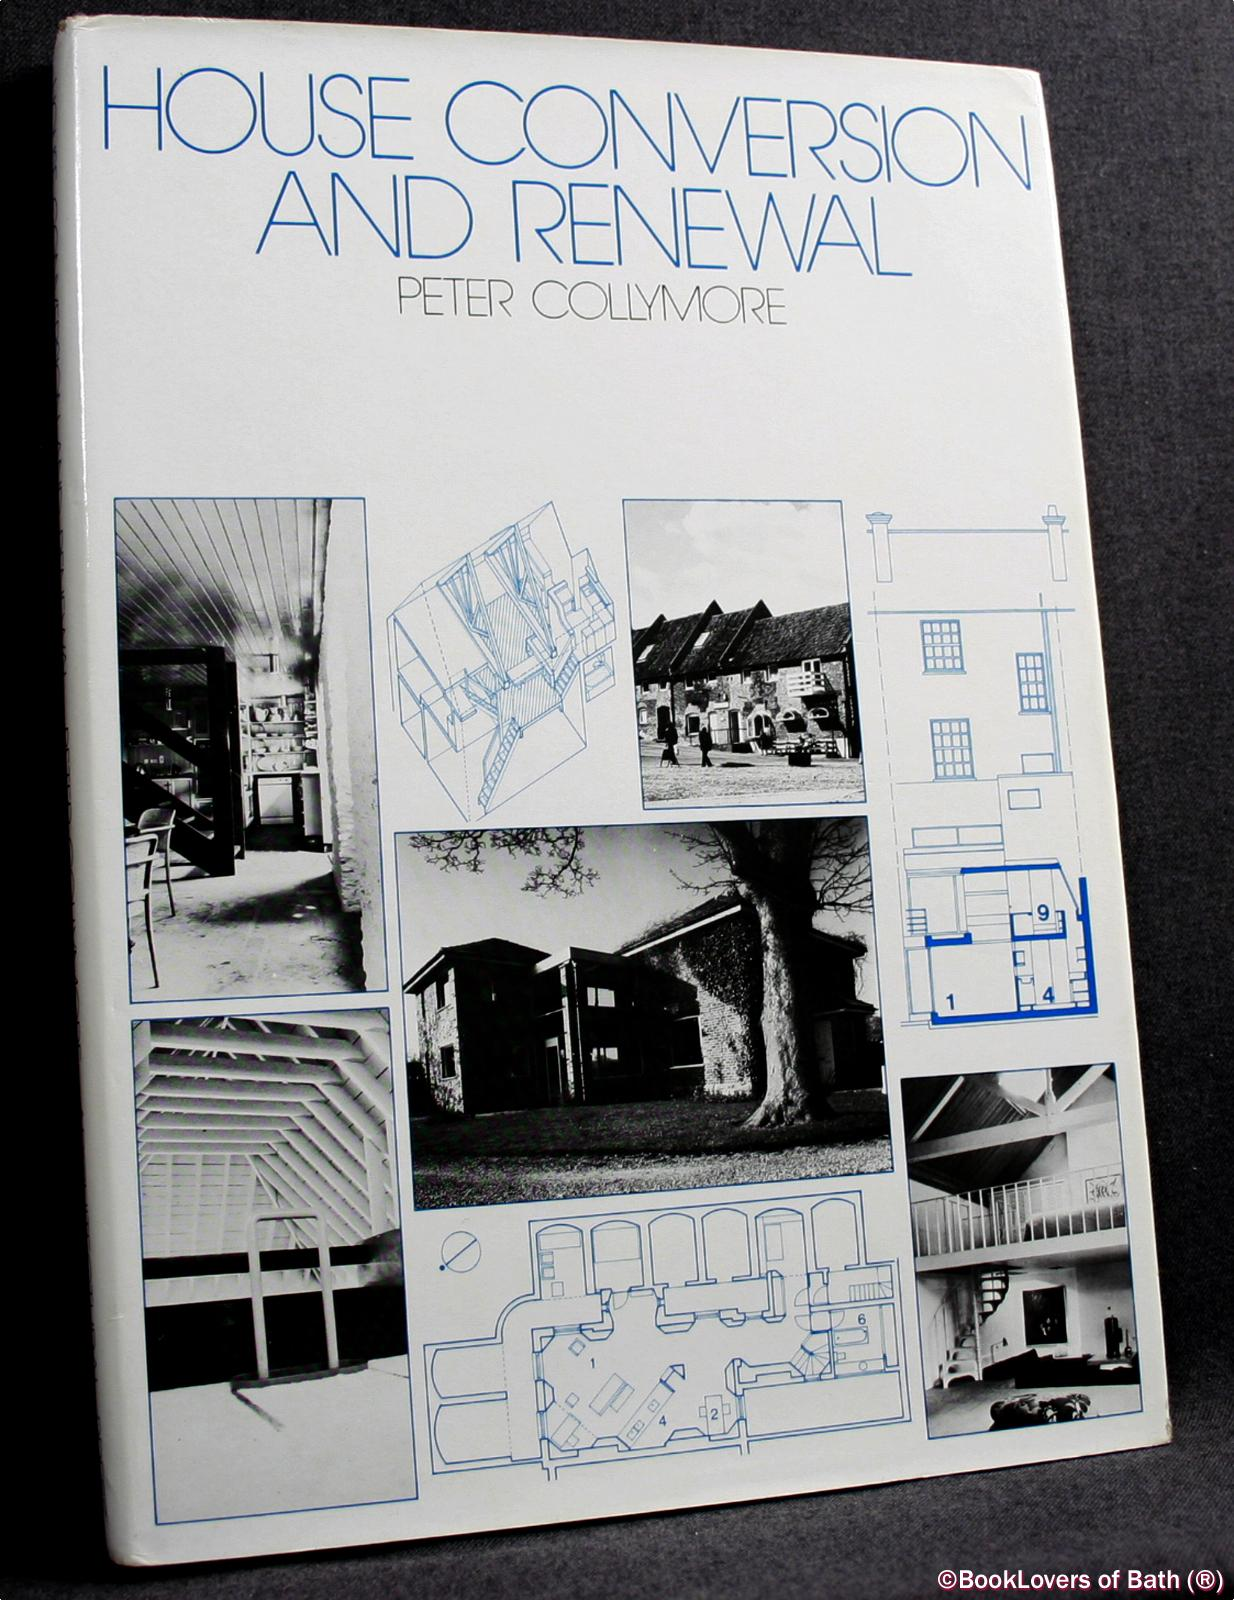 House Conversion and Renewal - Peter Collymore